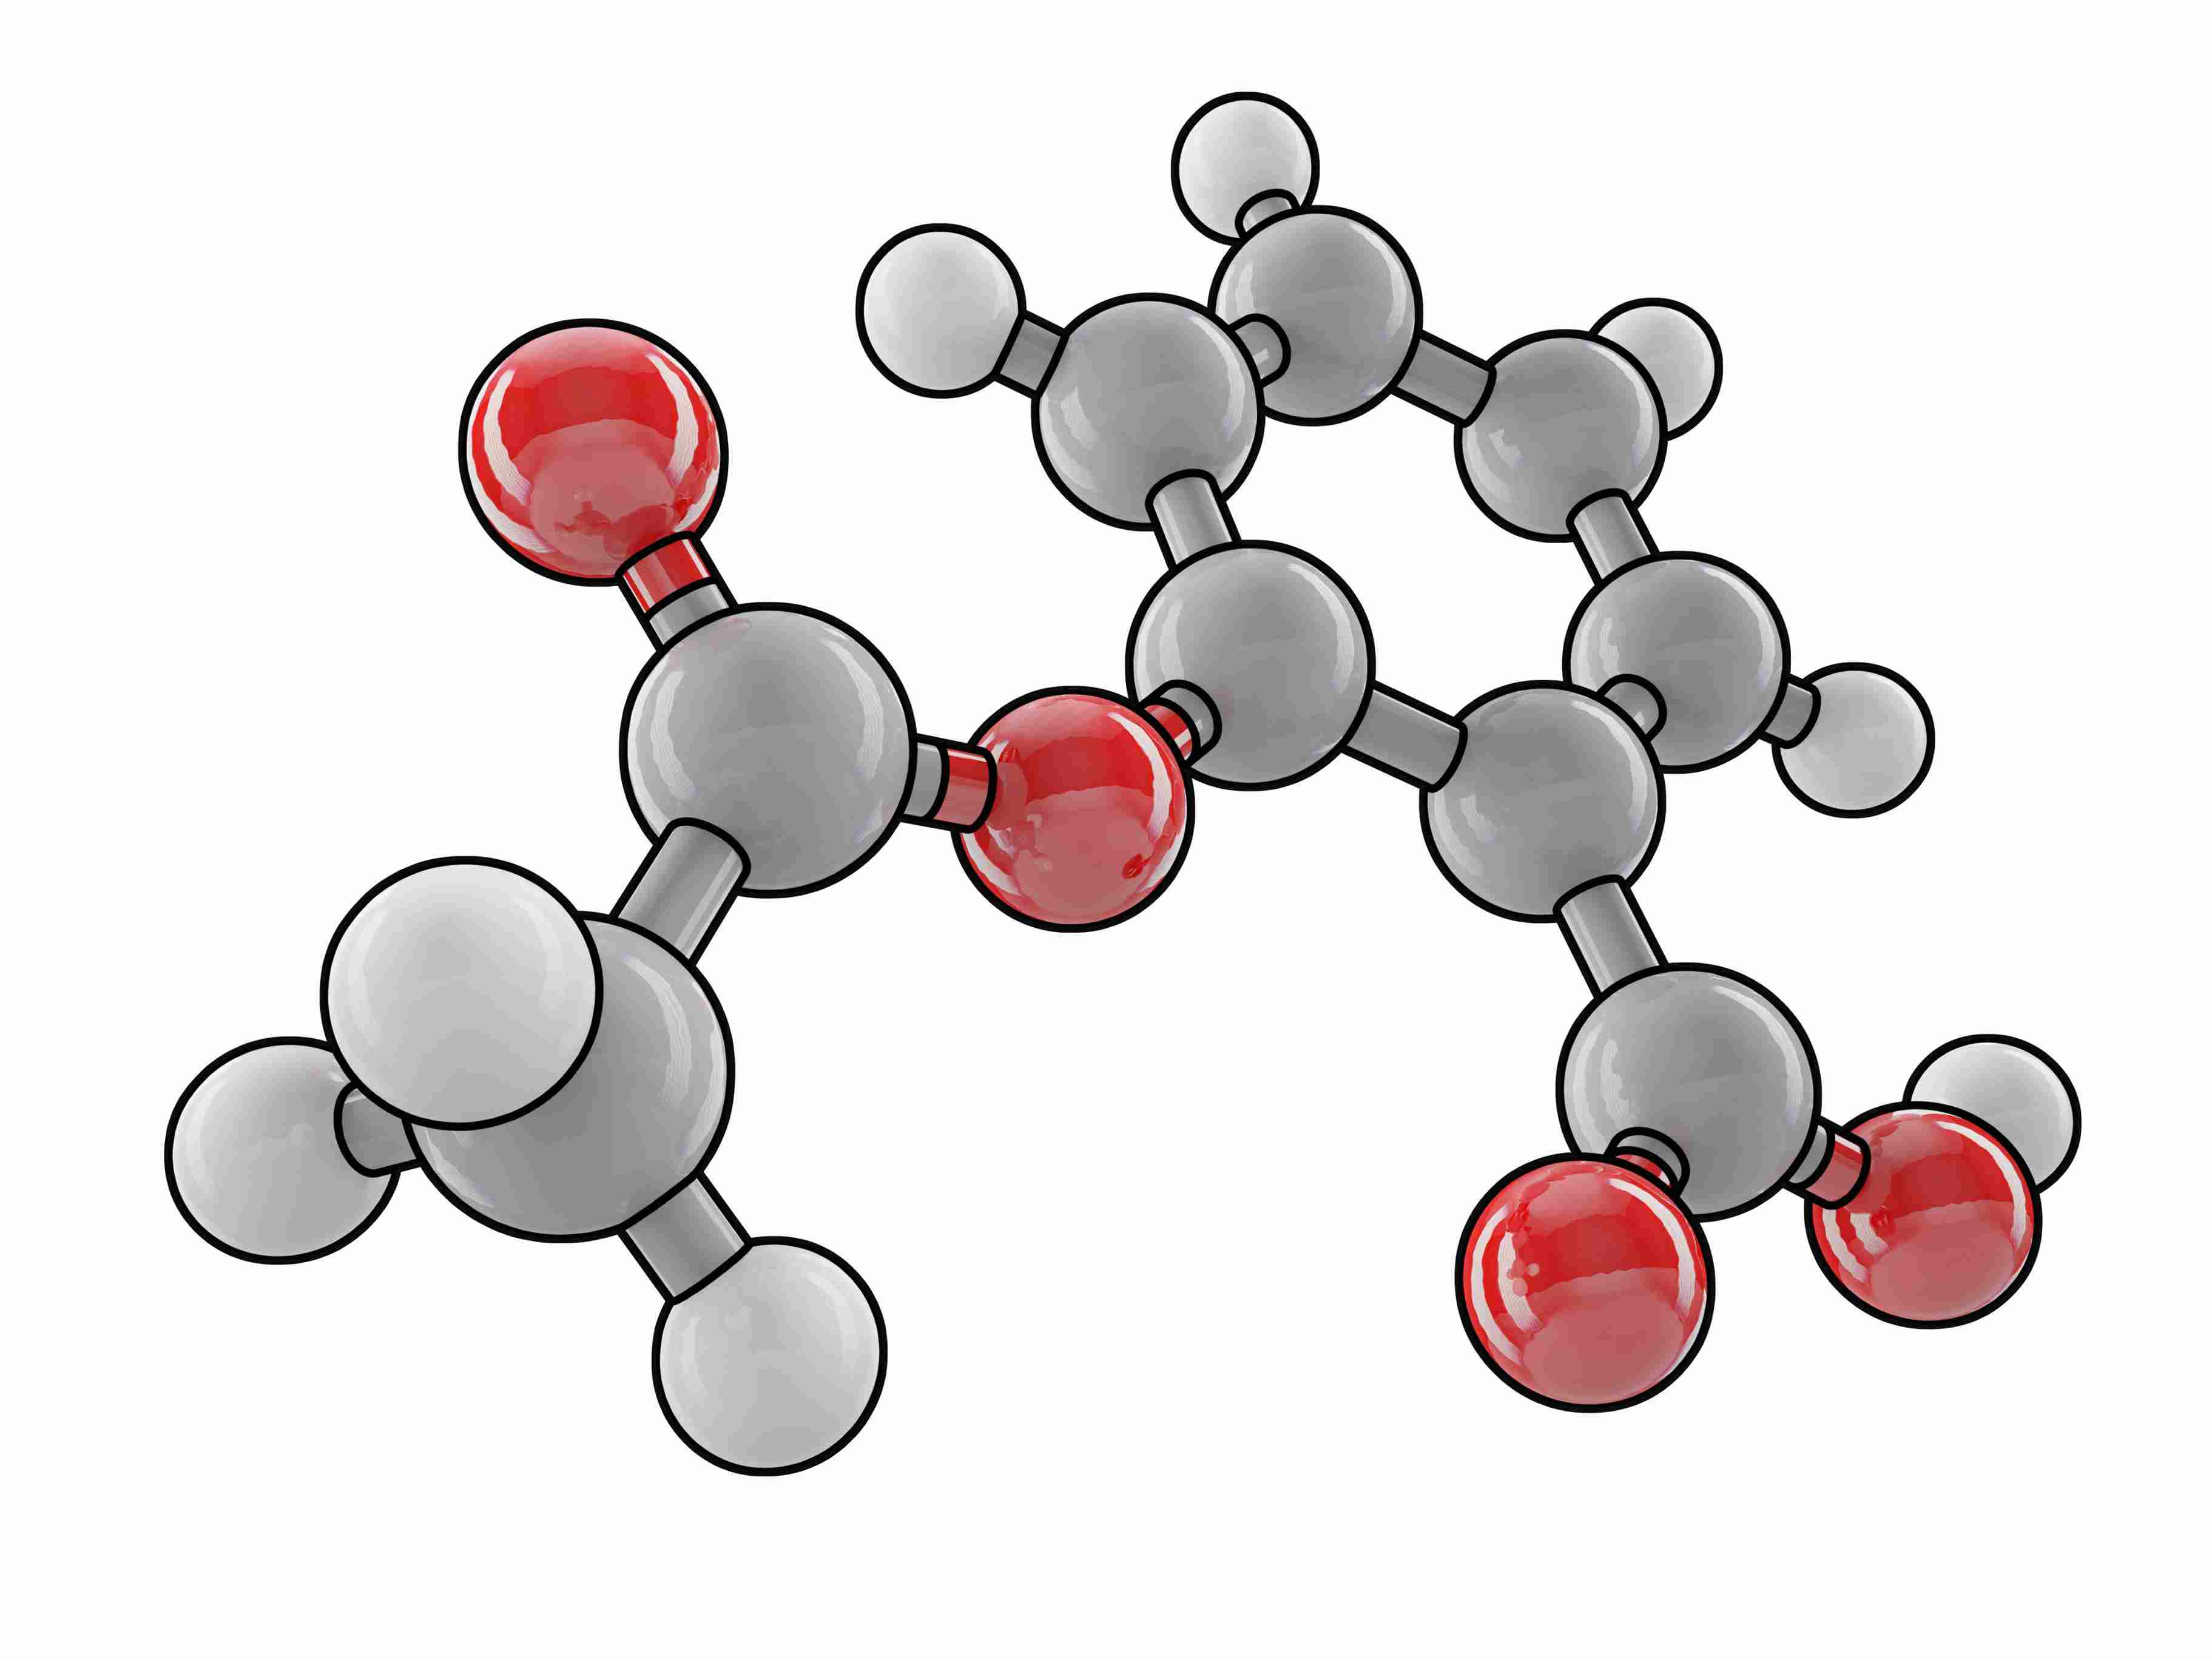 Use Structural Formulas To Write A Balanced Chemical Equation For The Synthesis Of Aspirin